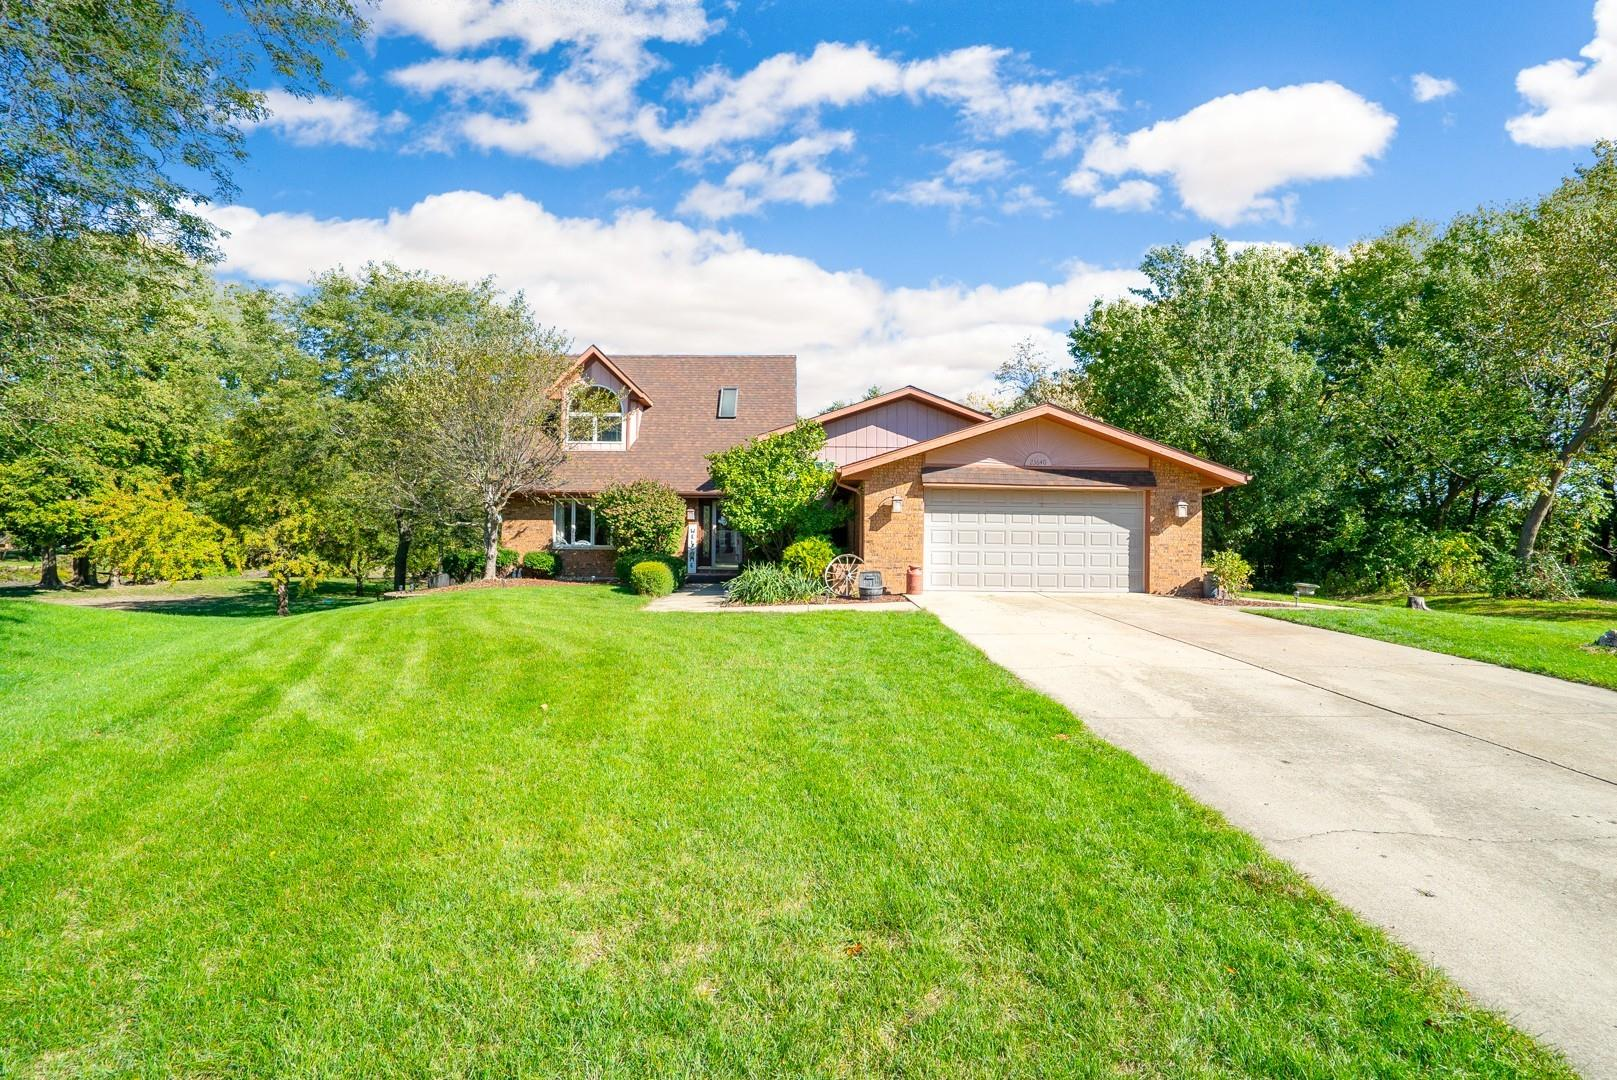 23640 Cottonwood Court, Minooka, IL 60447 - #: 10883233